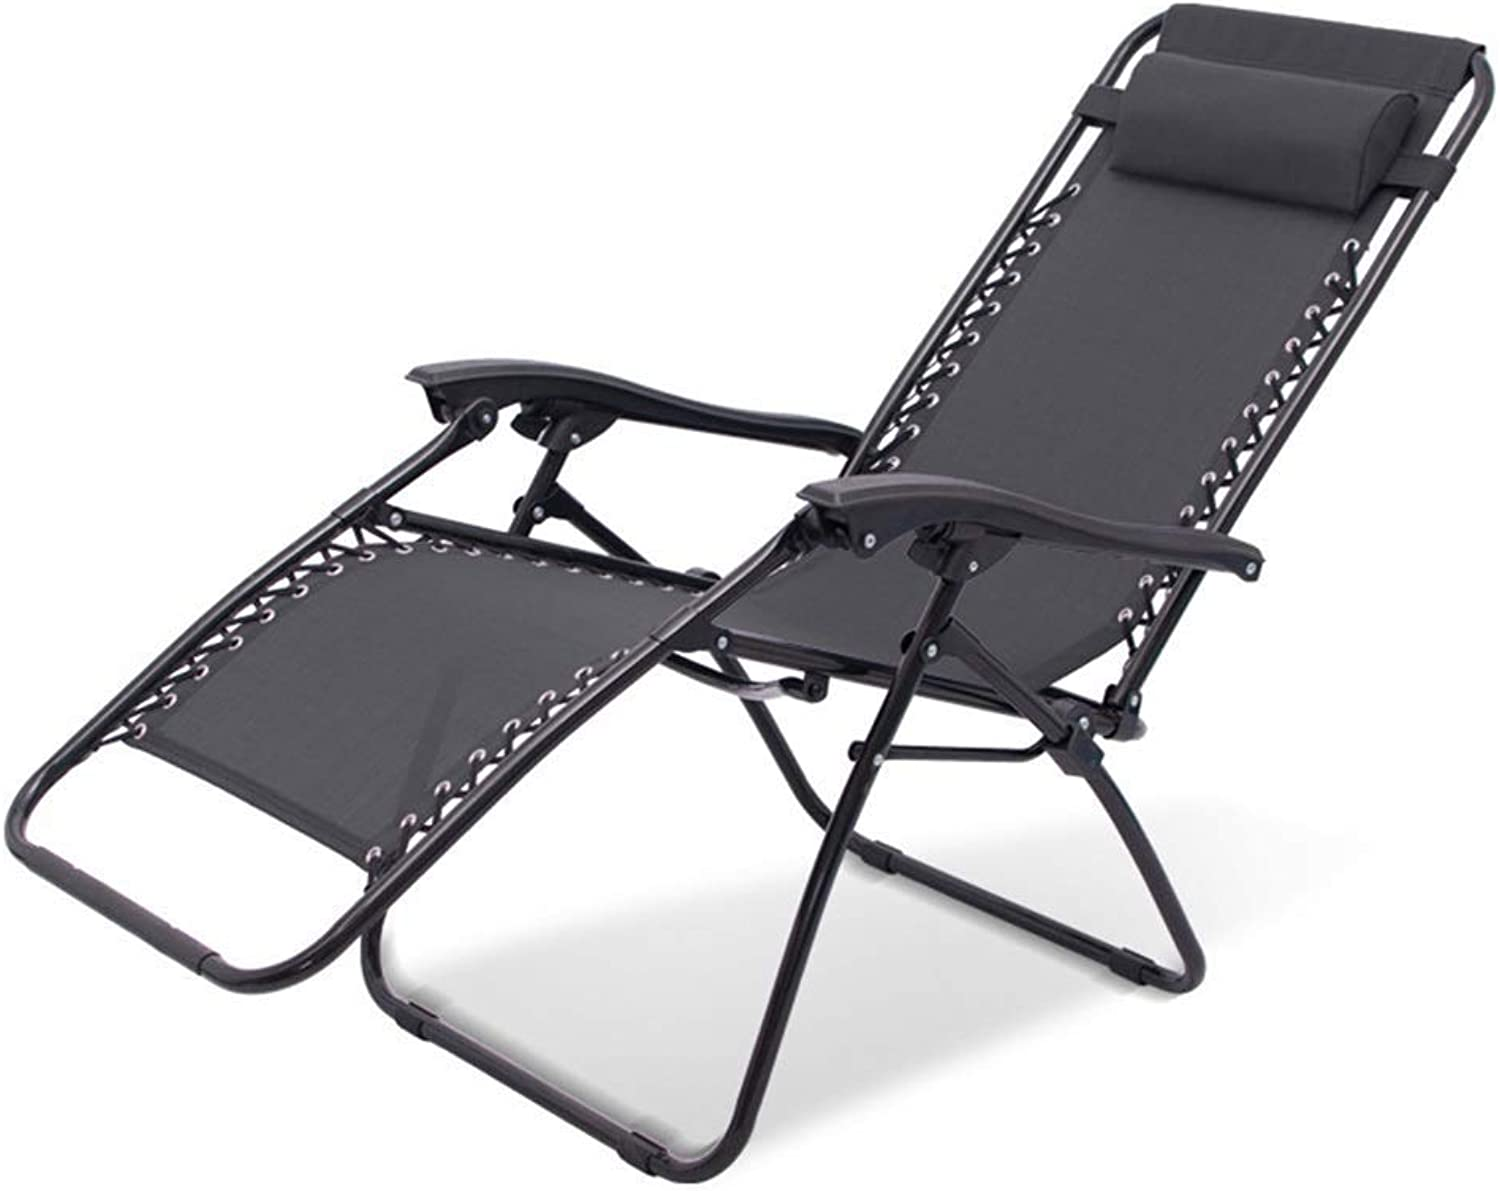 Zero Gravity Patio Lounger Chair Folding Garden Chair Outdoor Recliners Beach Camping Portable Chair with Neck Pillow Support 200kg